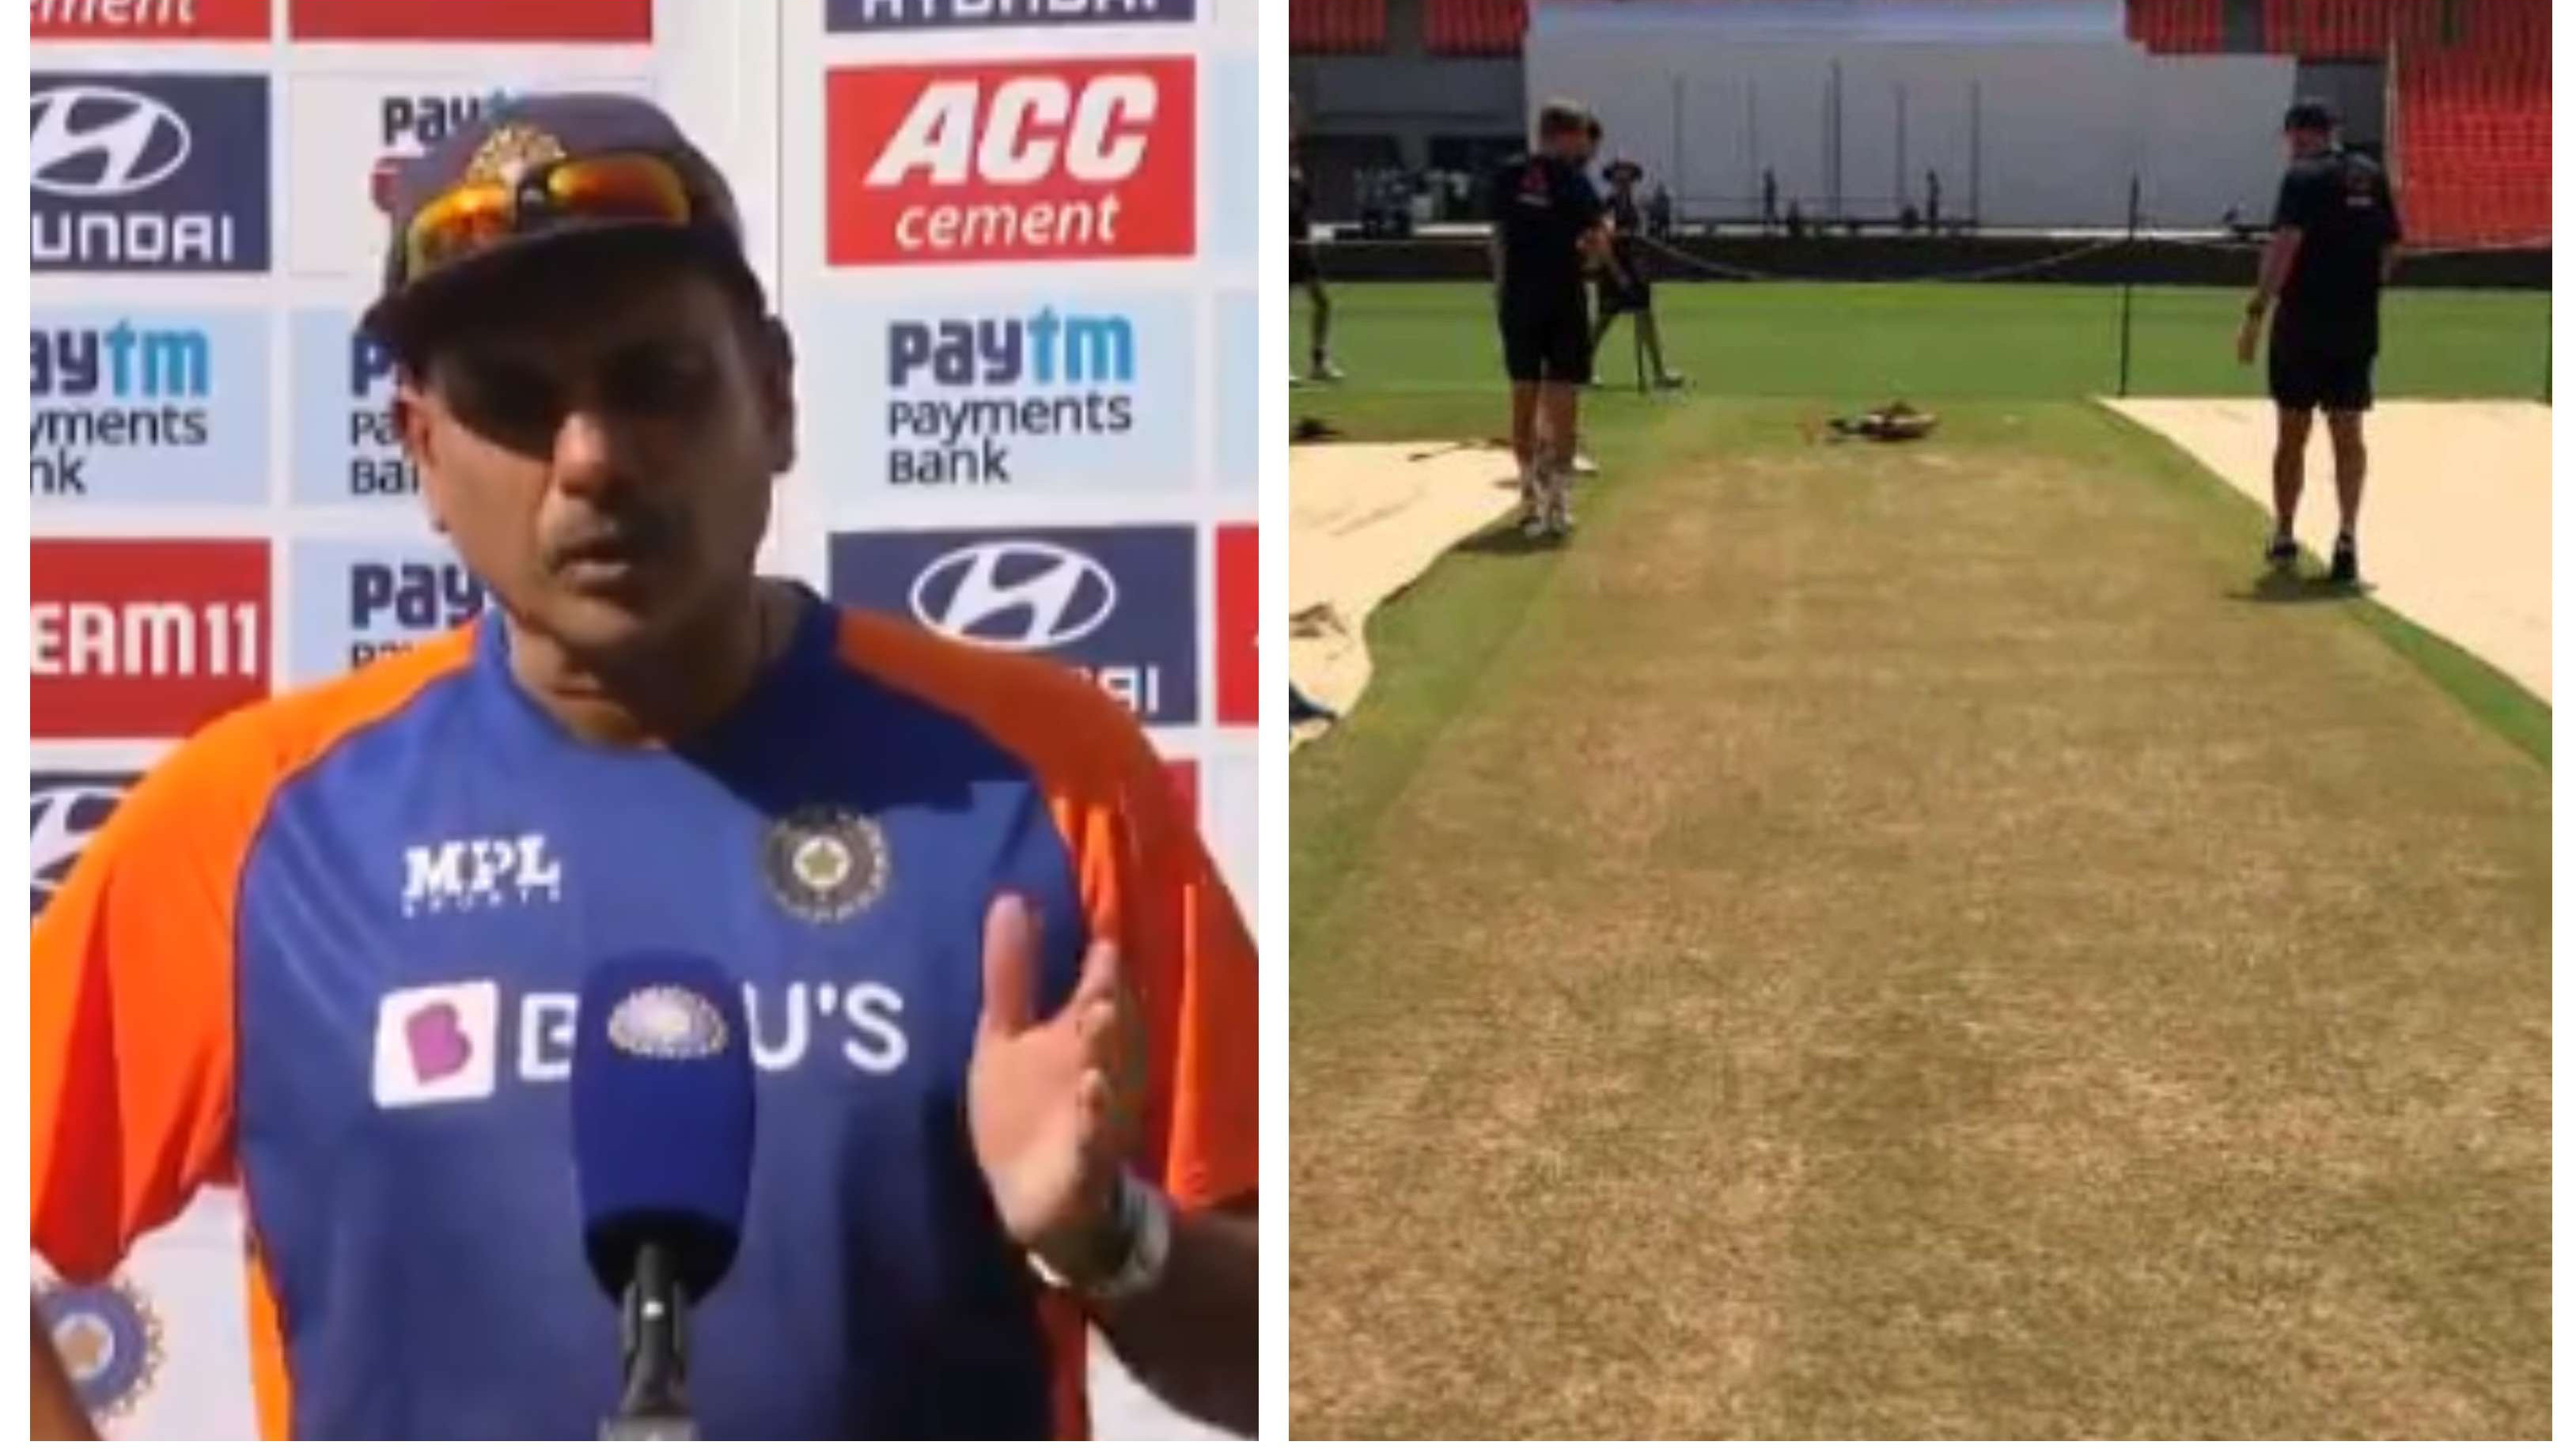 IND v ENG 2021: Shastri hails Motera curator for preparing pitches that provided